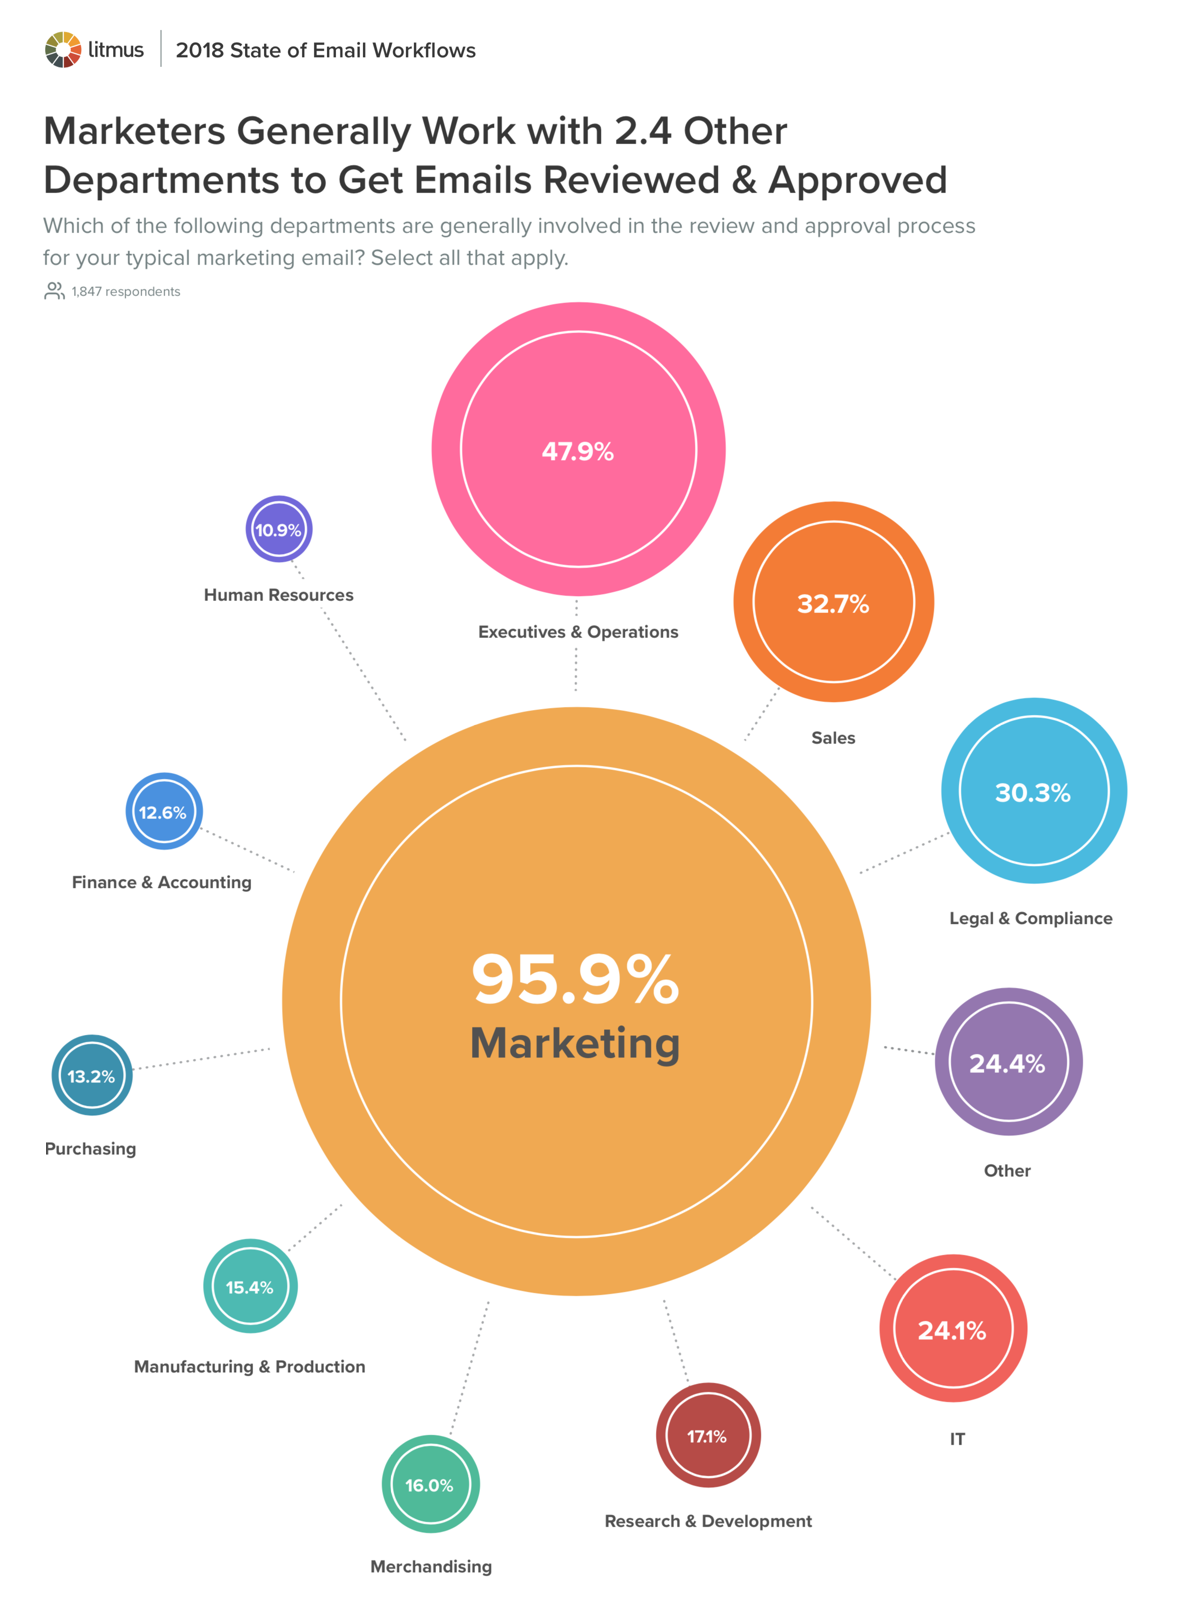 Marketers Generally Work with 2.4 Other Departments to Get Emails Reviewed and Approved